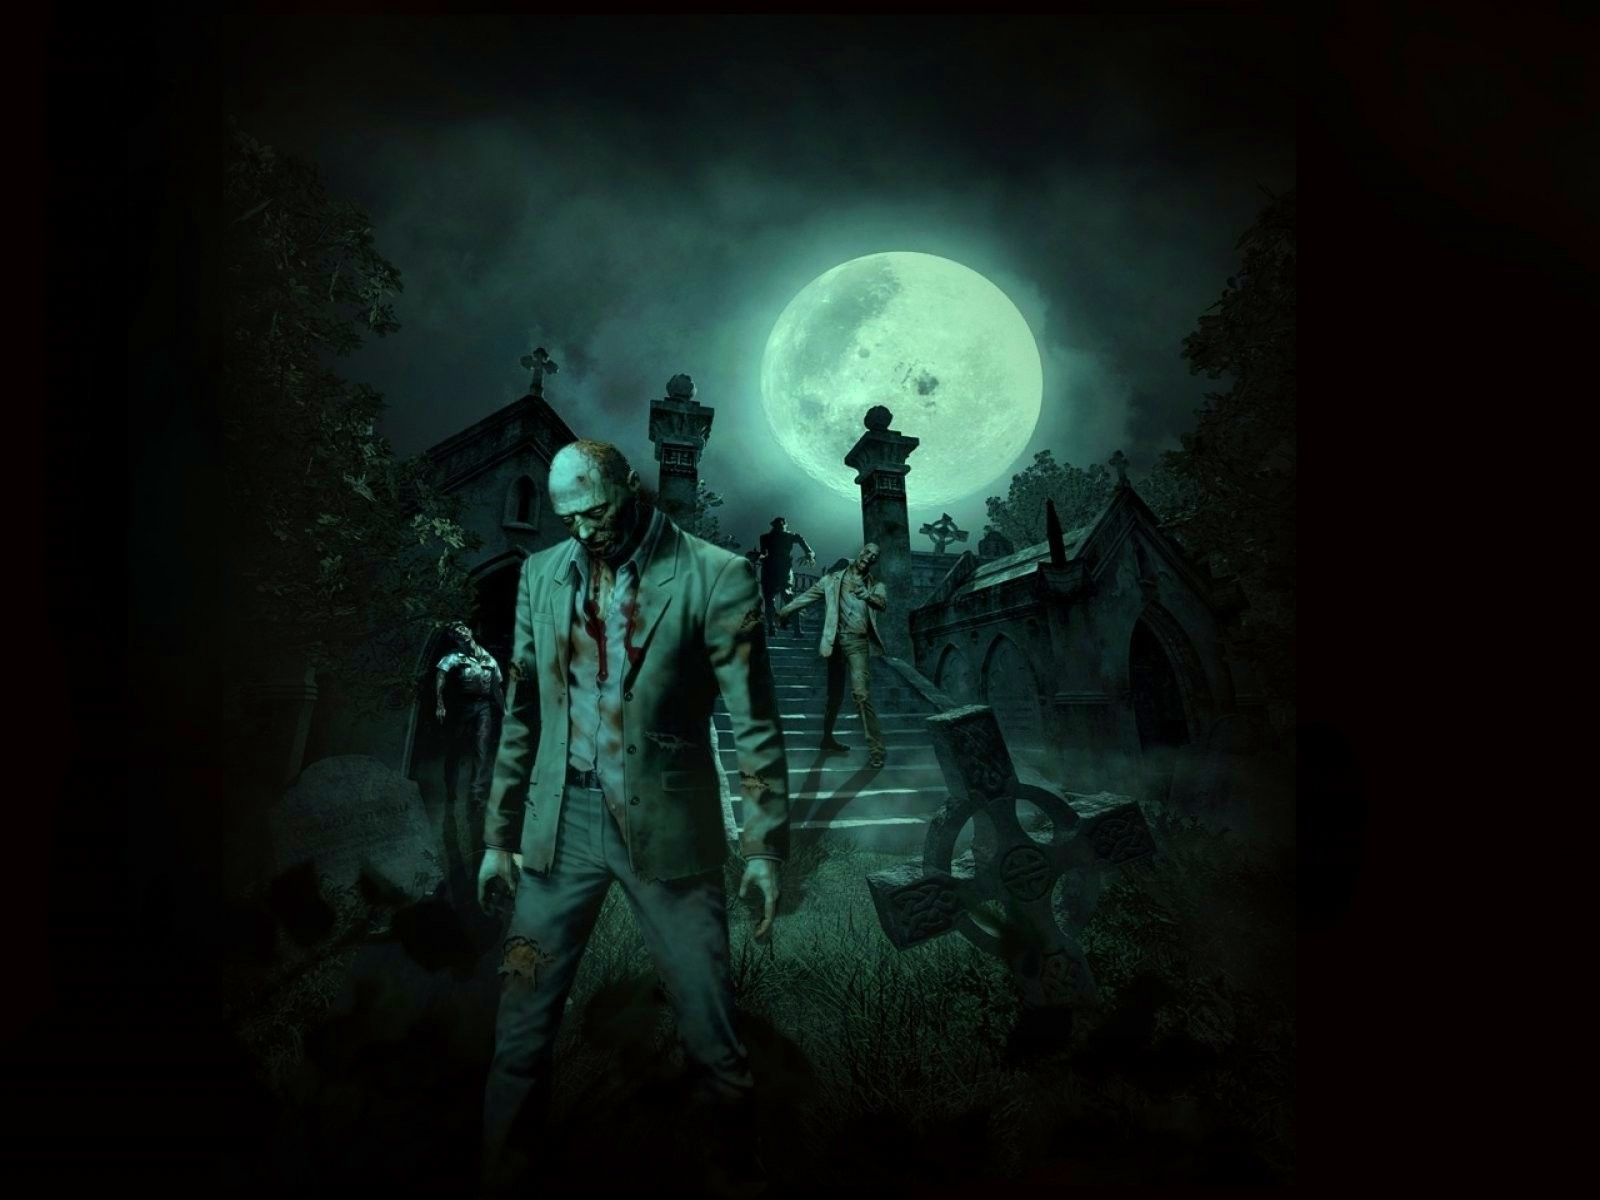 Colourful, Creepy, Dark, Original, Scary, Halloween, - Creepy Scary Pictures For Halloween - HD Wallpaper